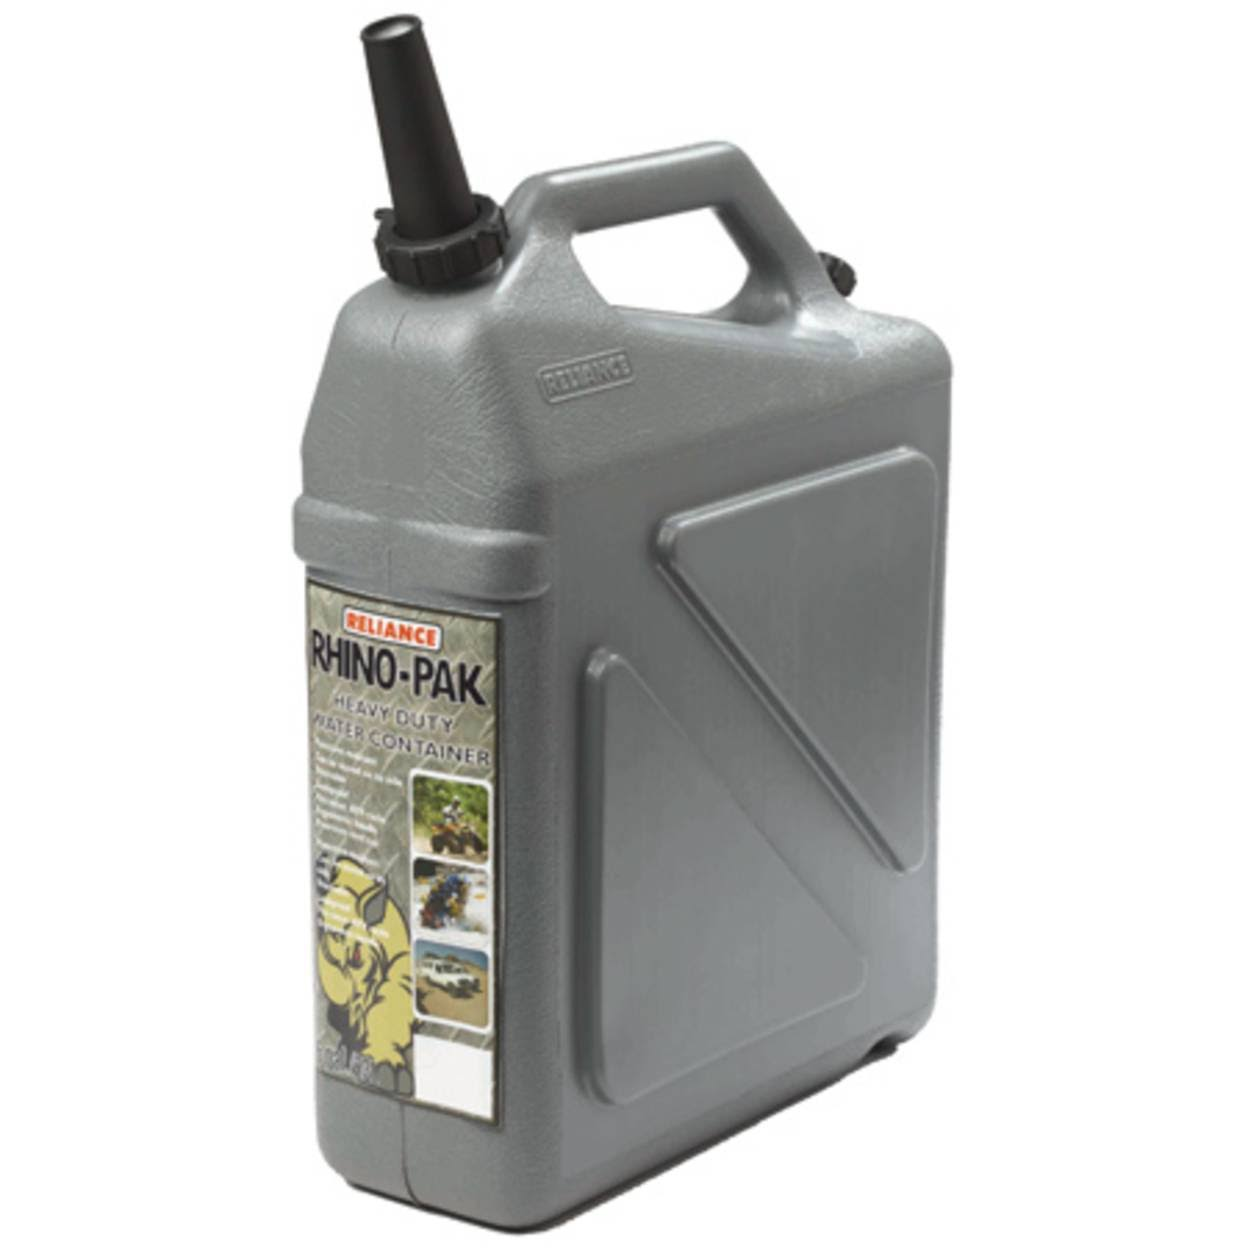 Reliance Rhino-Pak 5.5 Gal Heavy Duty Water Container